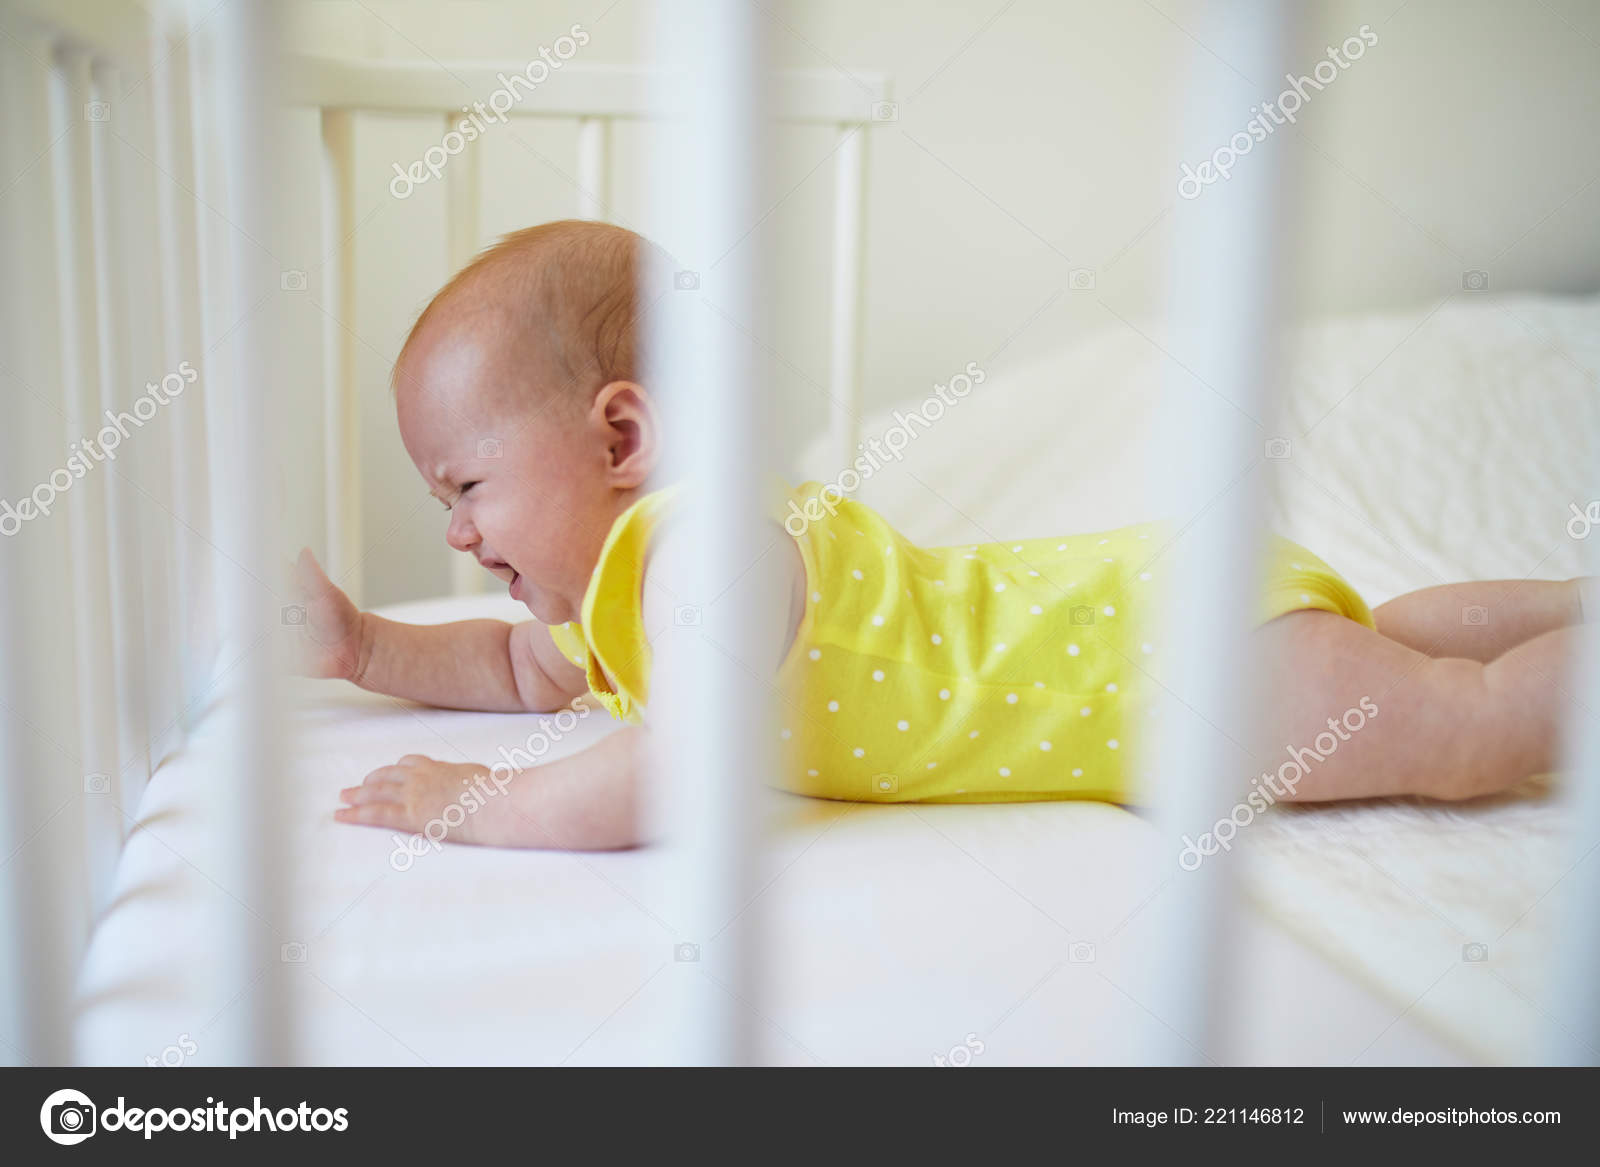 Adorable baby girl lying in co sleeper crib attached to parents bed and crying little child not wanting day nap in cot infant kid in sunny nursery